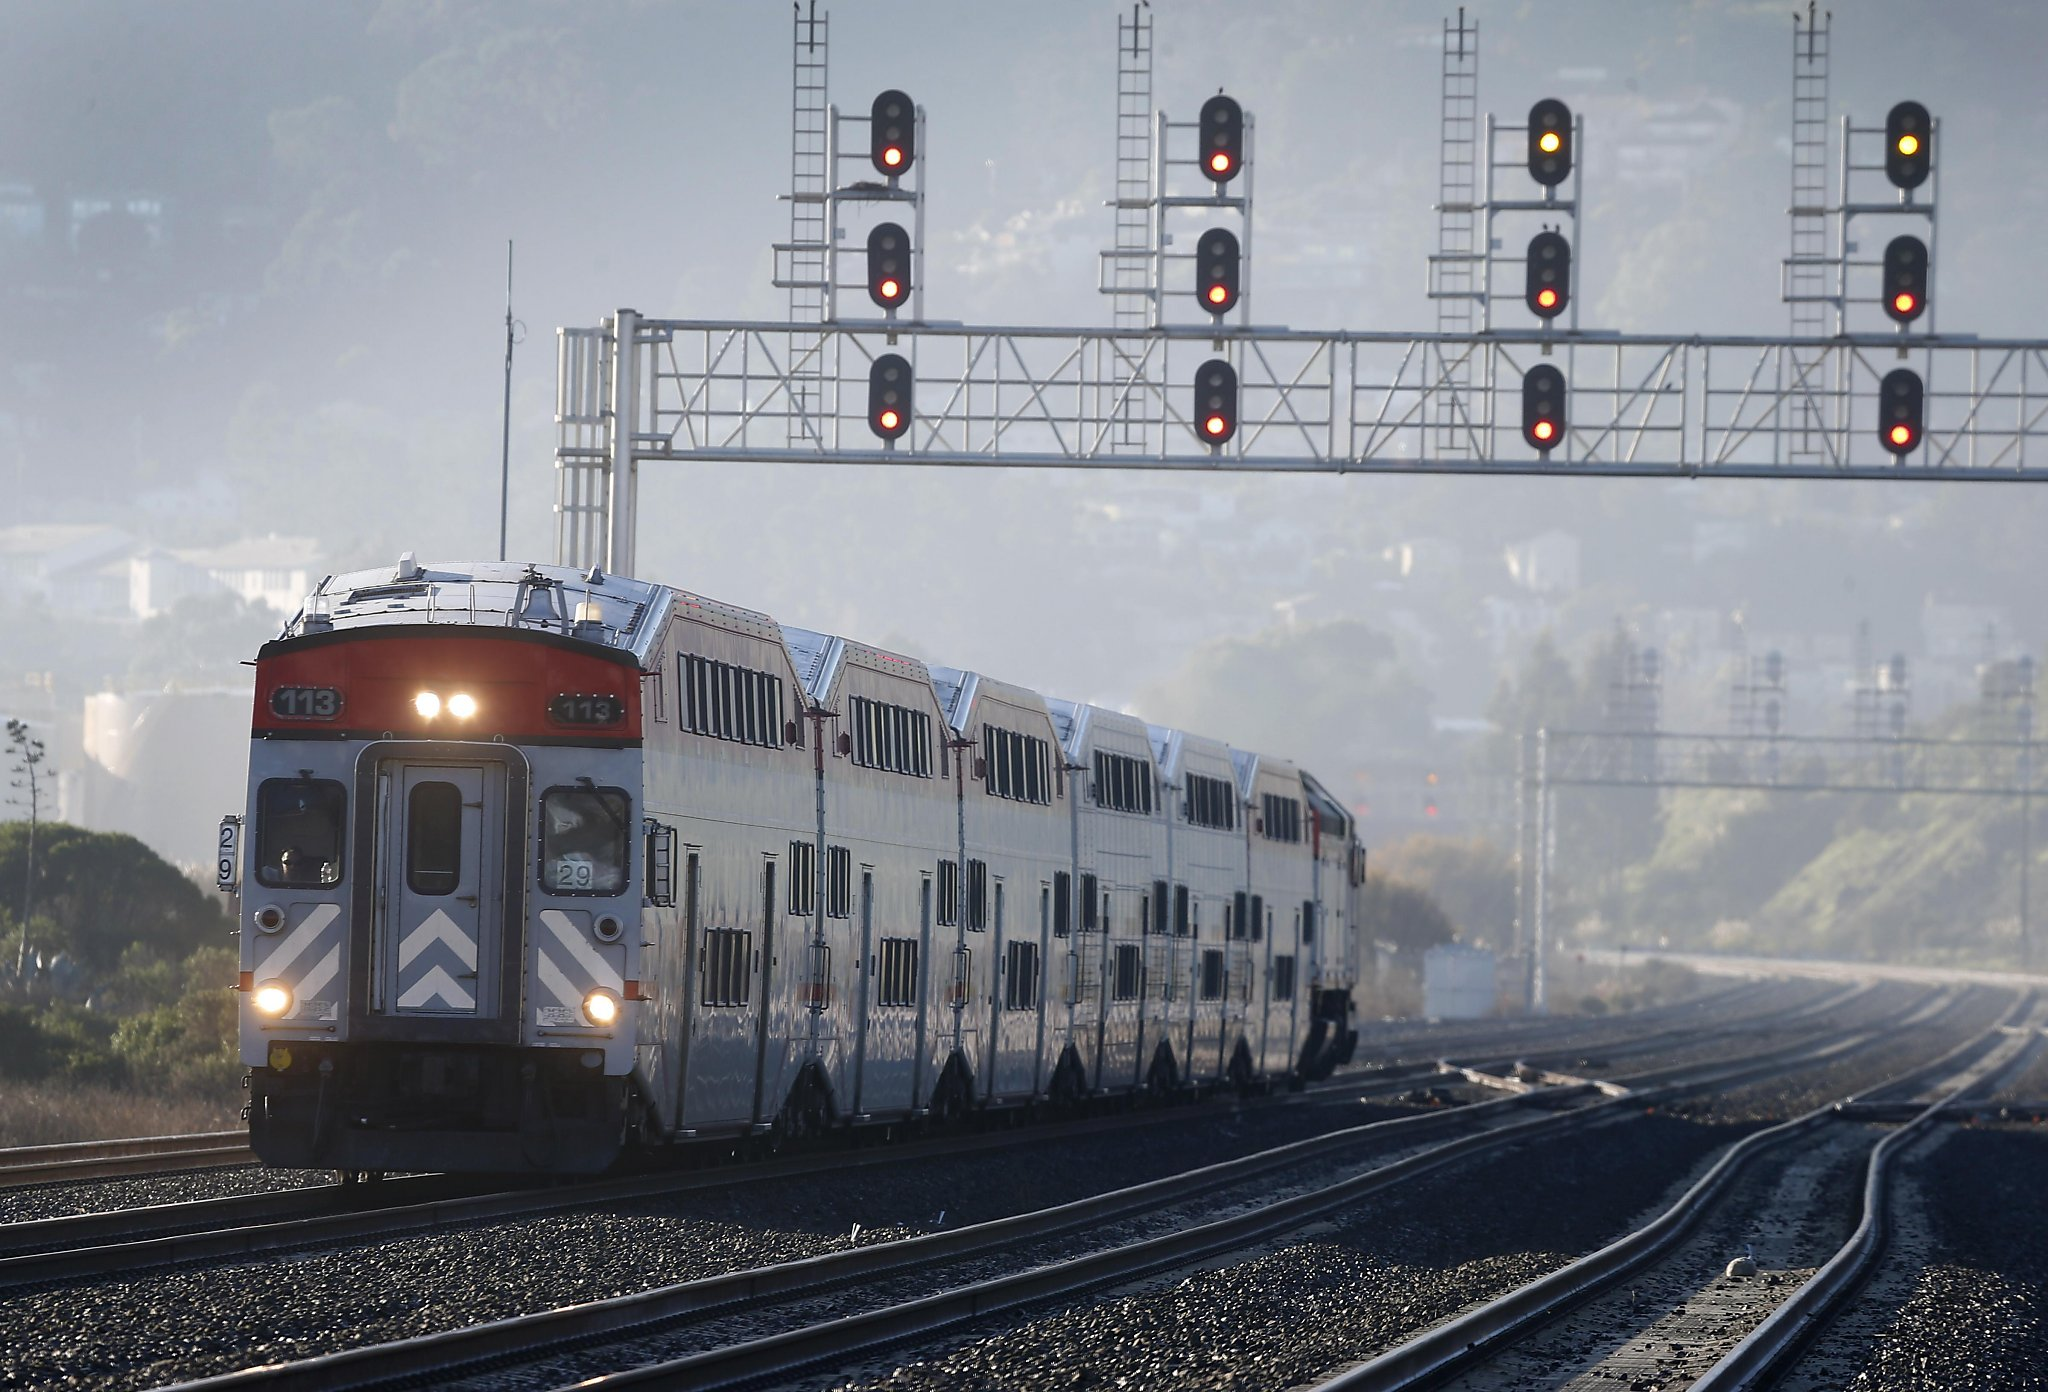 With Trump in charge, Republicans target Caltrain - San ...